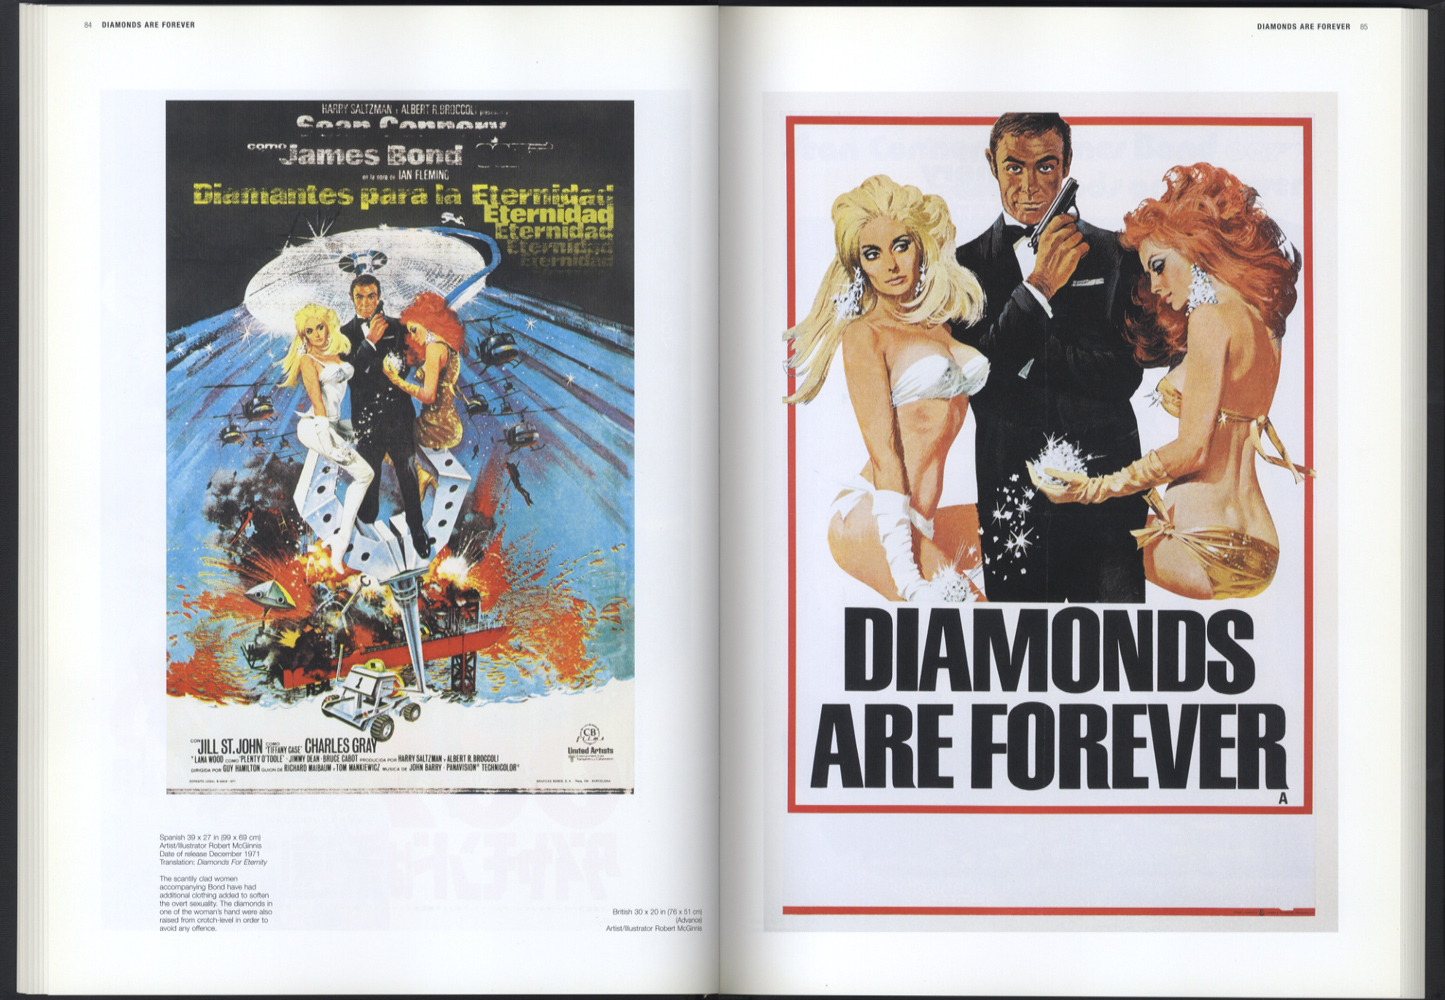 JAMES BOND MOVIE POSTERS THE OFFICIAL 007 COLLECTION[image4]